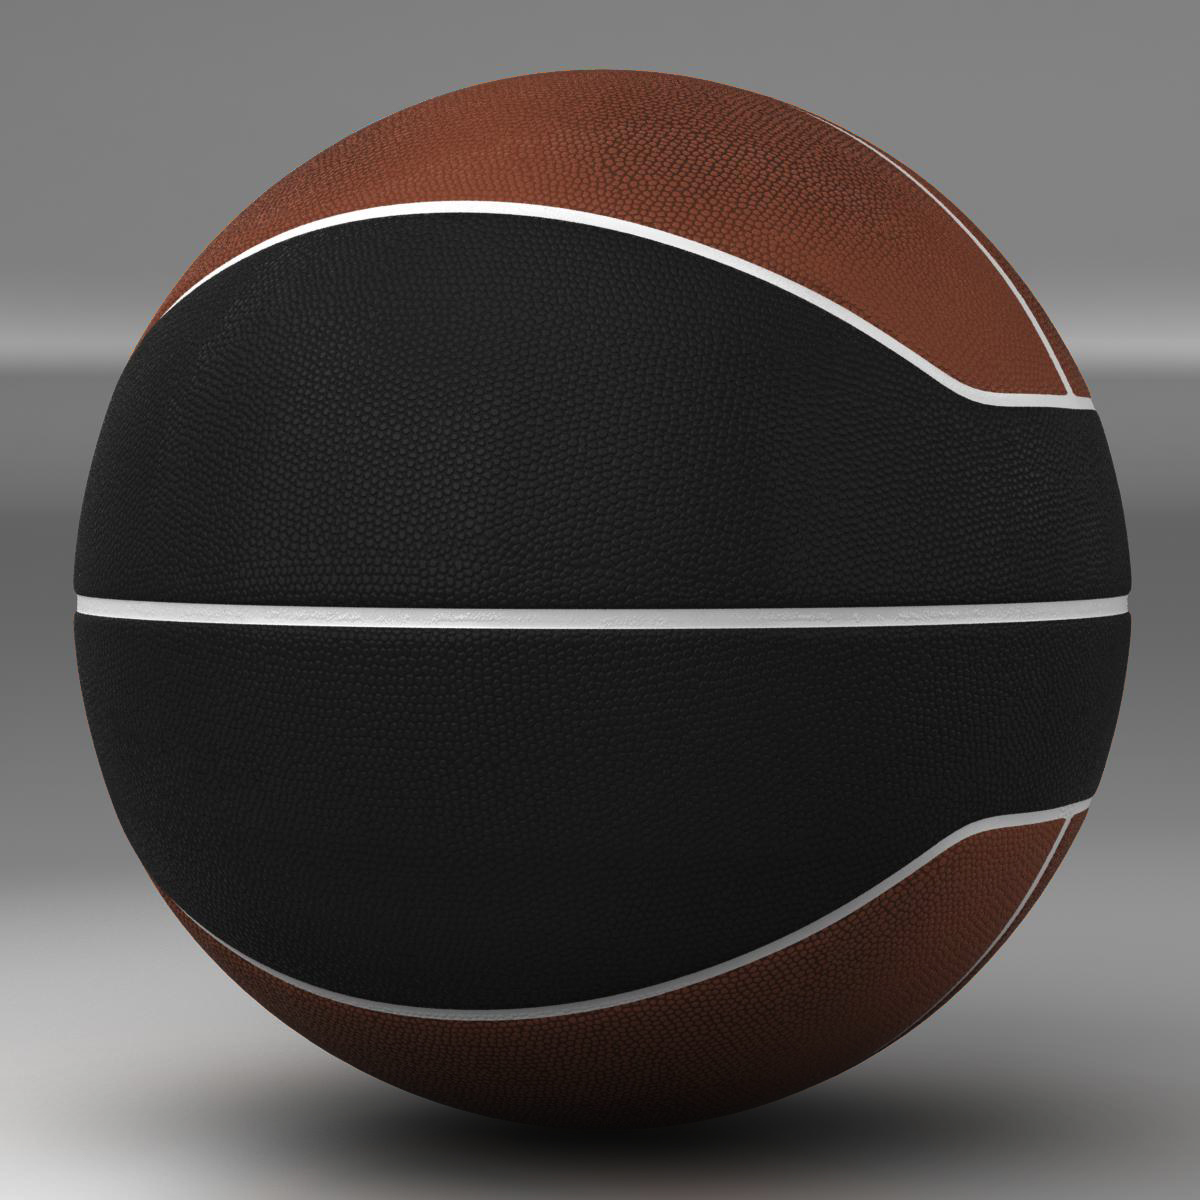 basketball ball euro brown-black 3d model 3ds max fbx c4d ma mb obj 165097